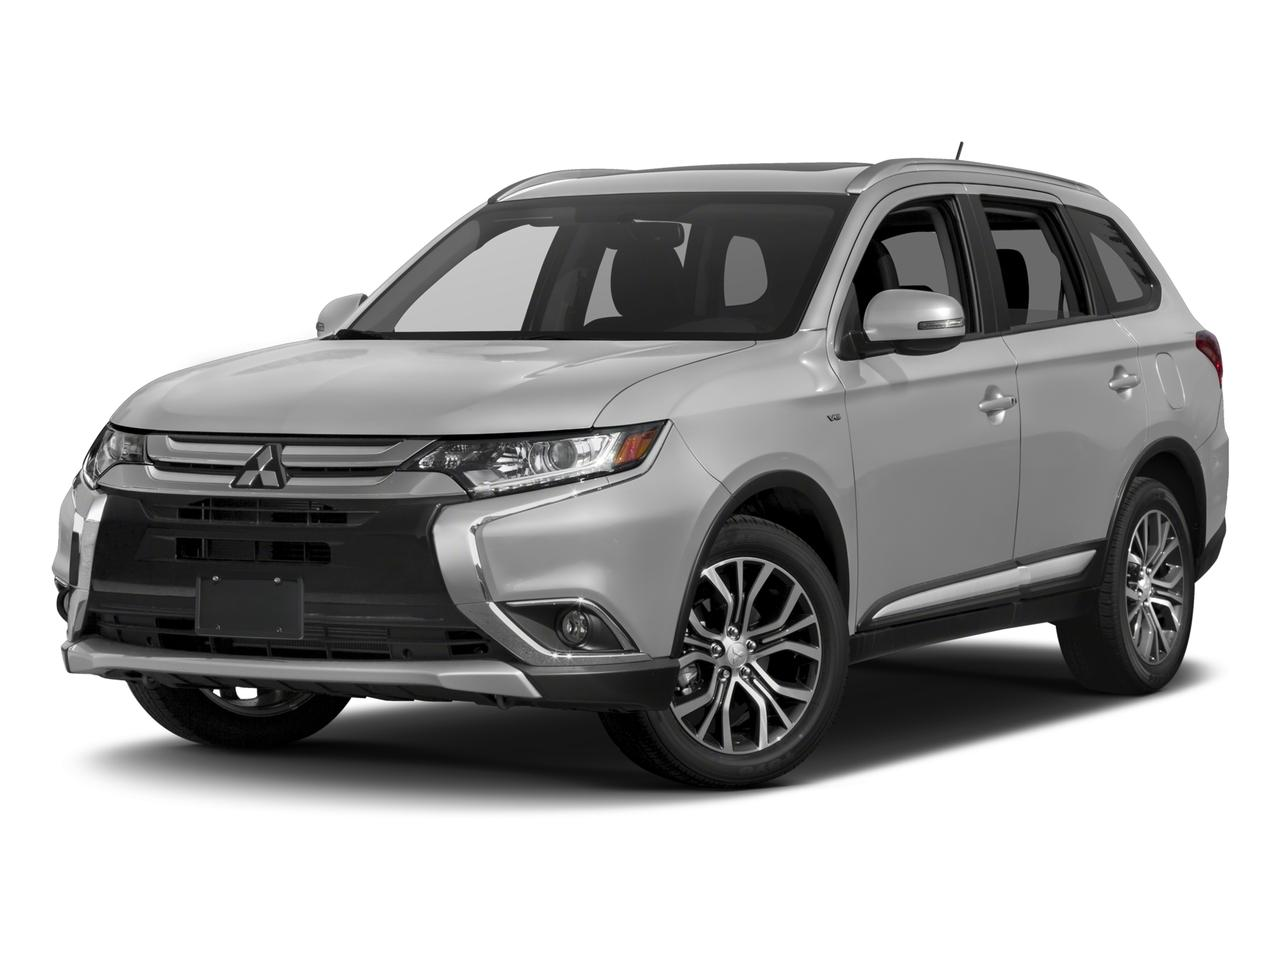 2017 Mitsubishi Outlander Vehicle Photo in Rockville, MD 20852